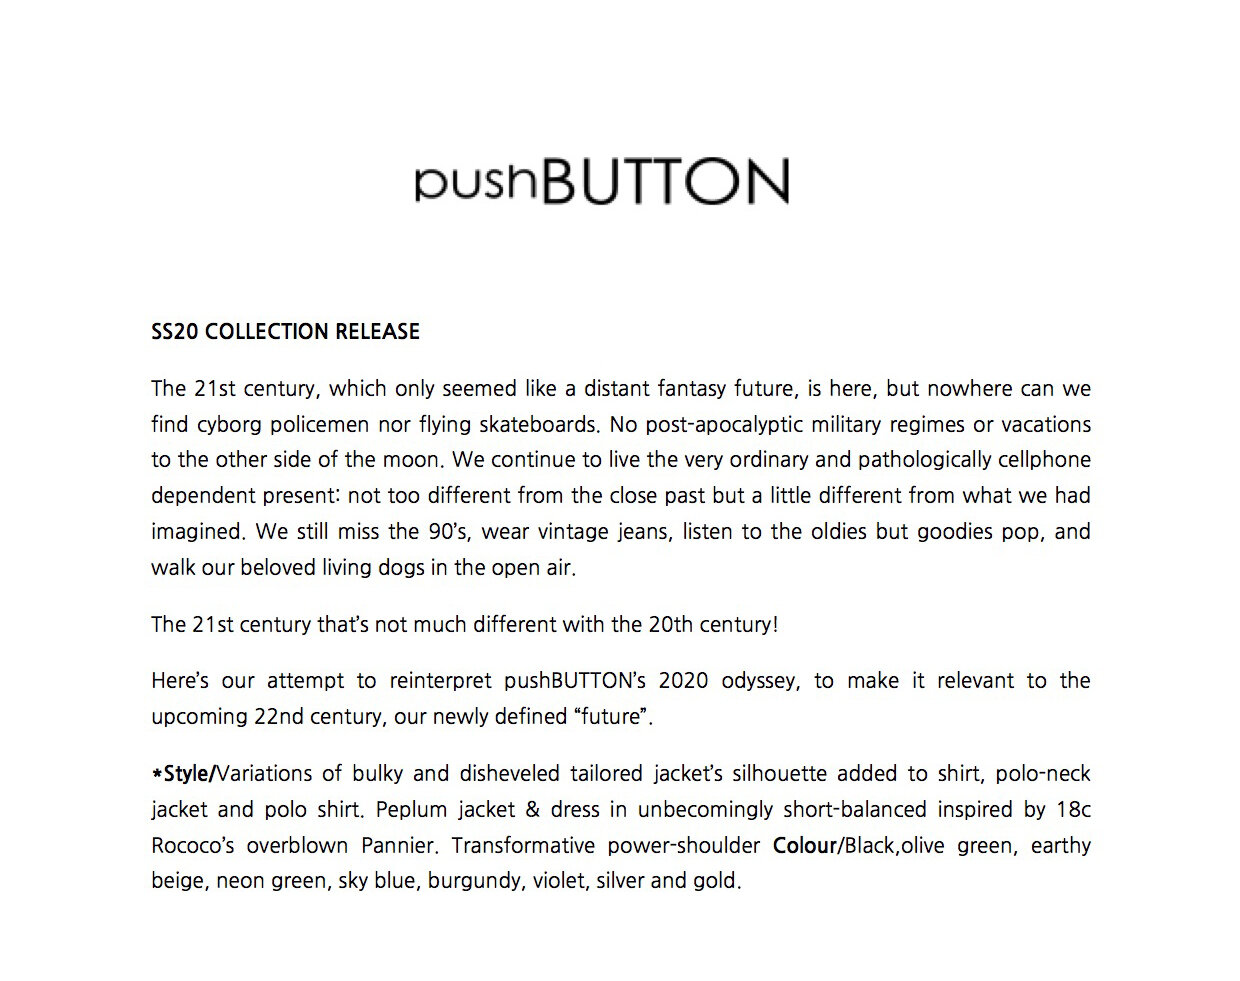 SS20 Collection Release-pushBUTTON .jpg